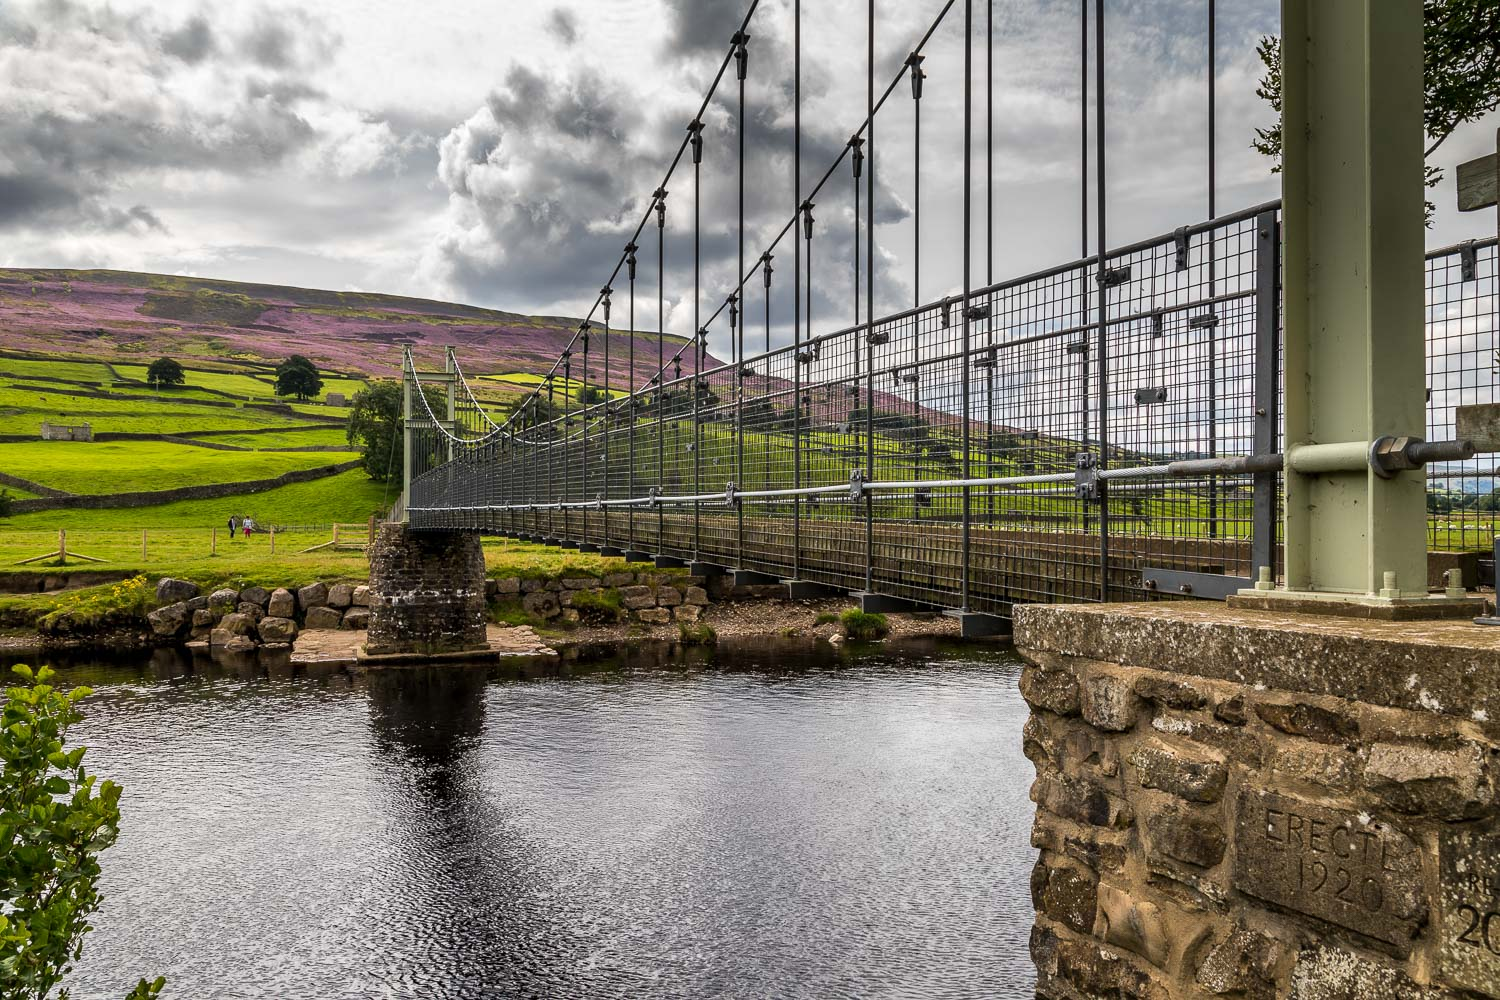 Reeth Suspension Bridge,